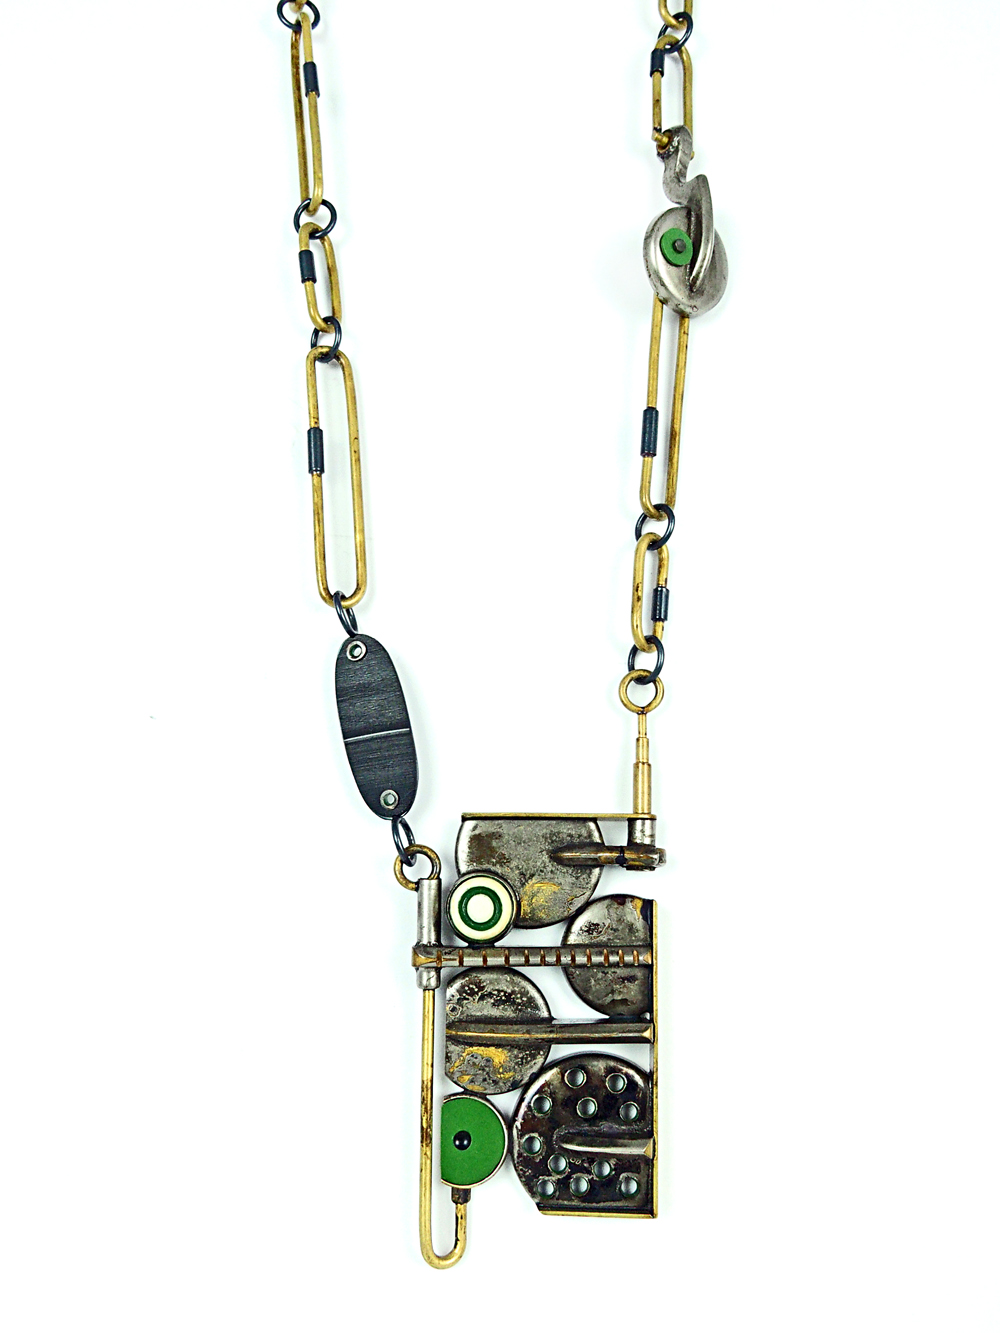 "Transistor Necklace, 2015, Brass, sterling silver, vintage saxophone parts, celluloid, vinyl, bone, paint, 3 x 1.5 x 0.5 pendant- 20"" necklace"